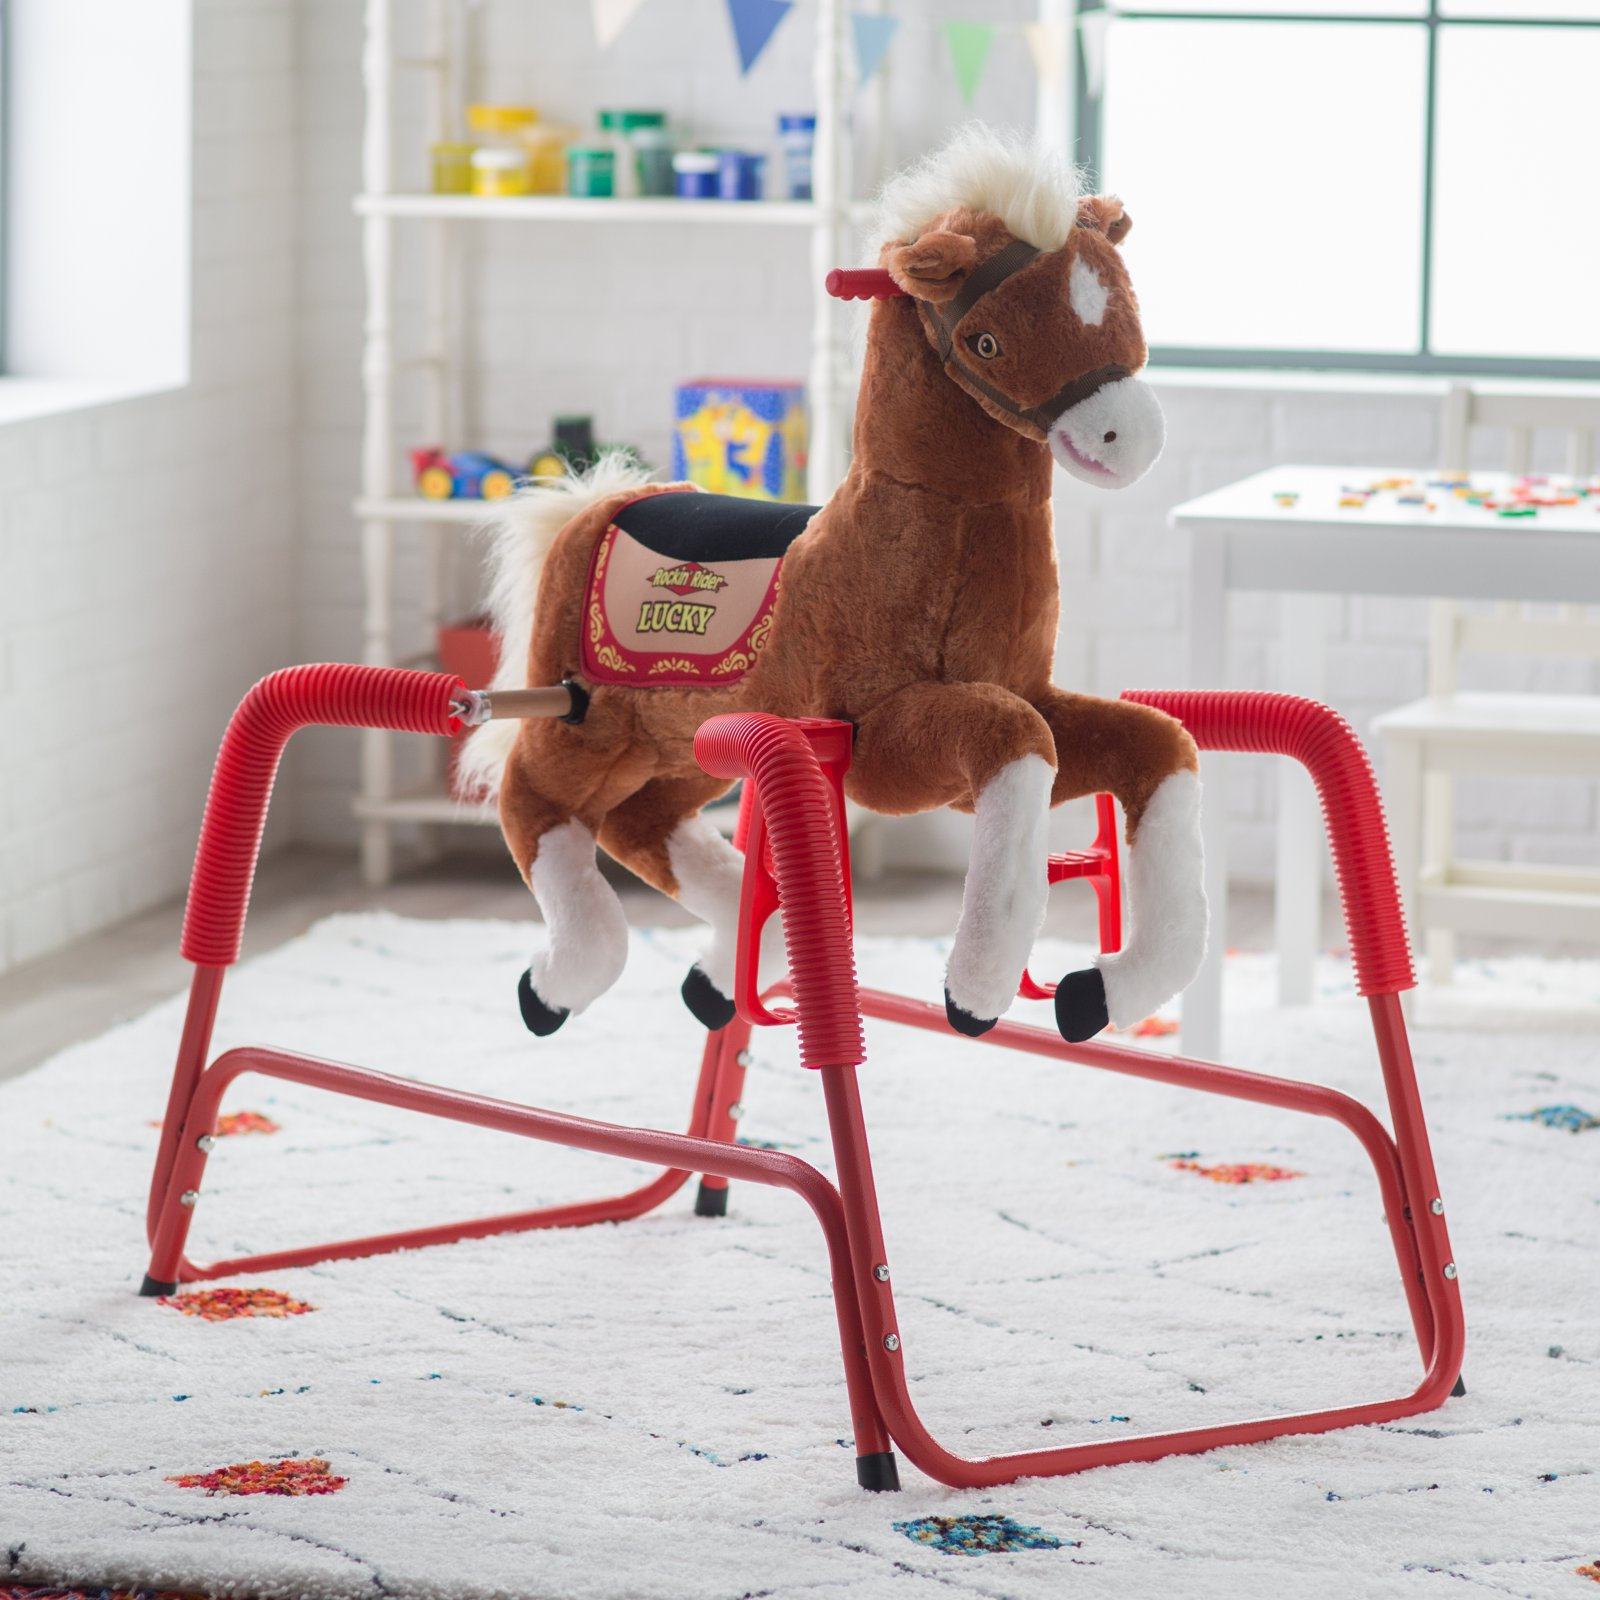 Rockin' Rider Lucky the Deluxe Talking Plush Animated Spring Horse